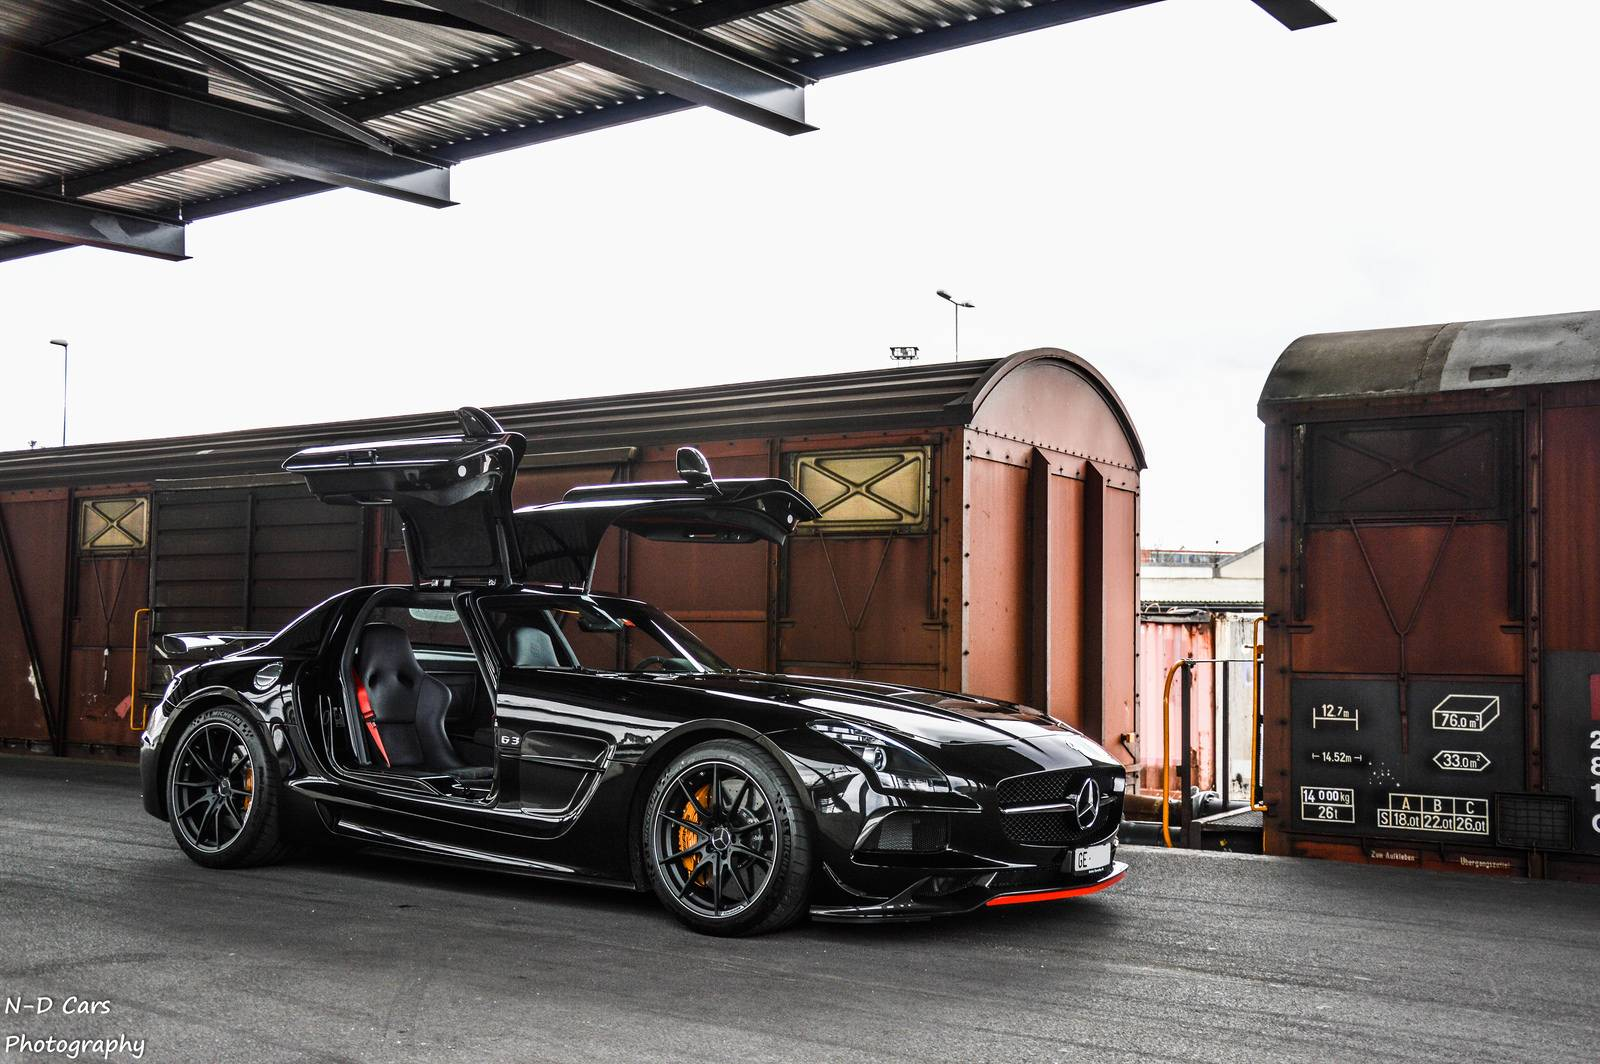 Black Mercedes Benz Sls Amg Series Photoshoot